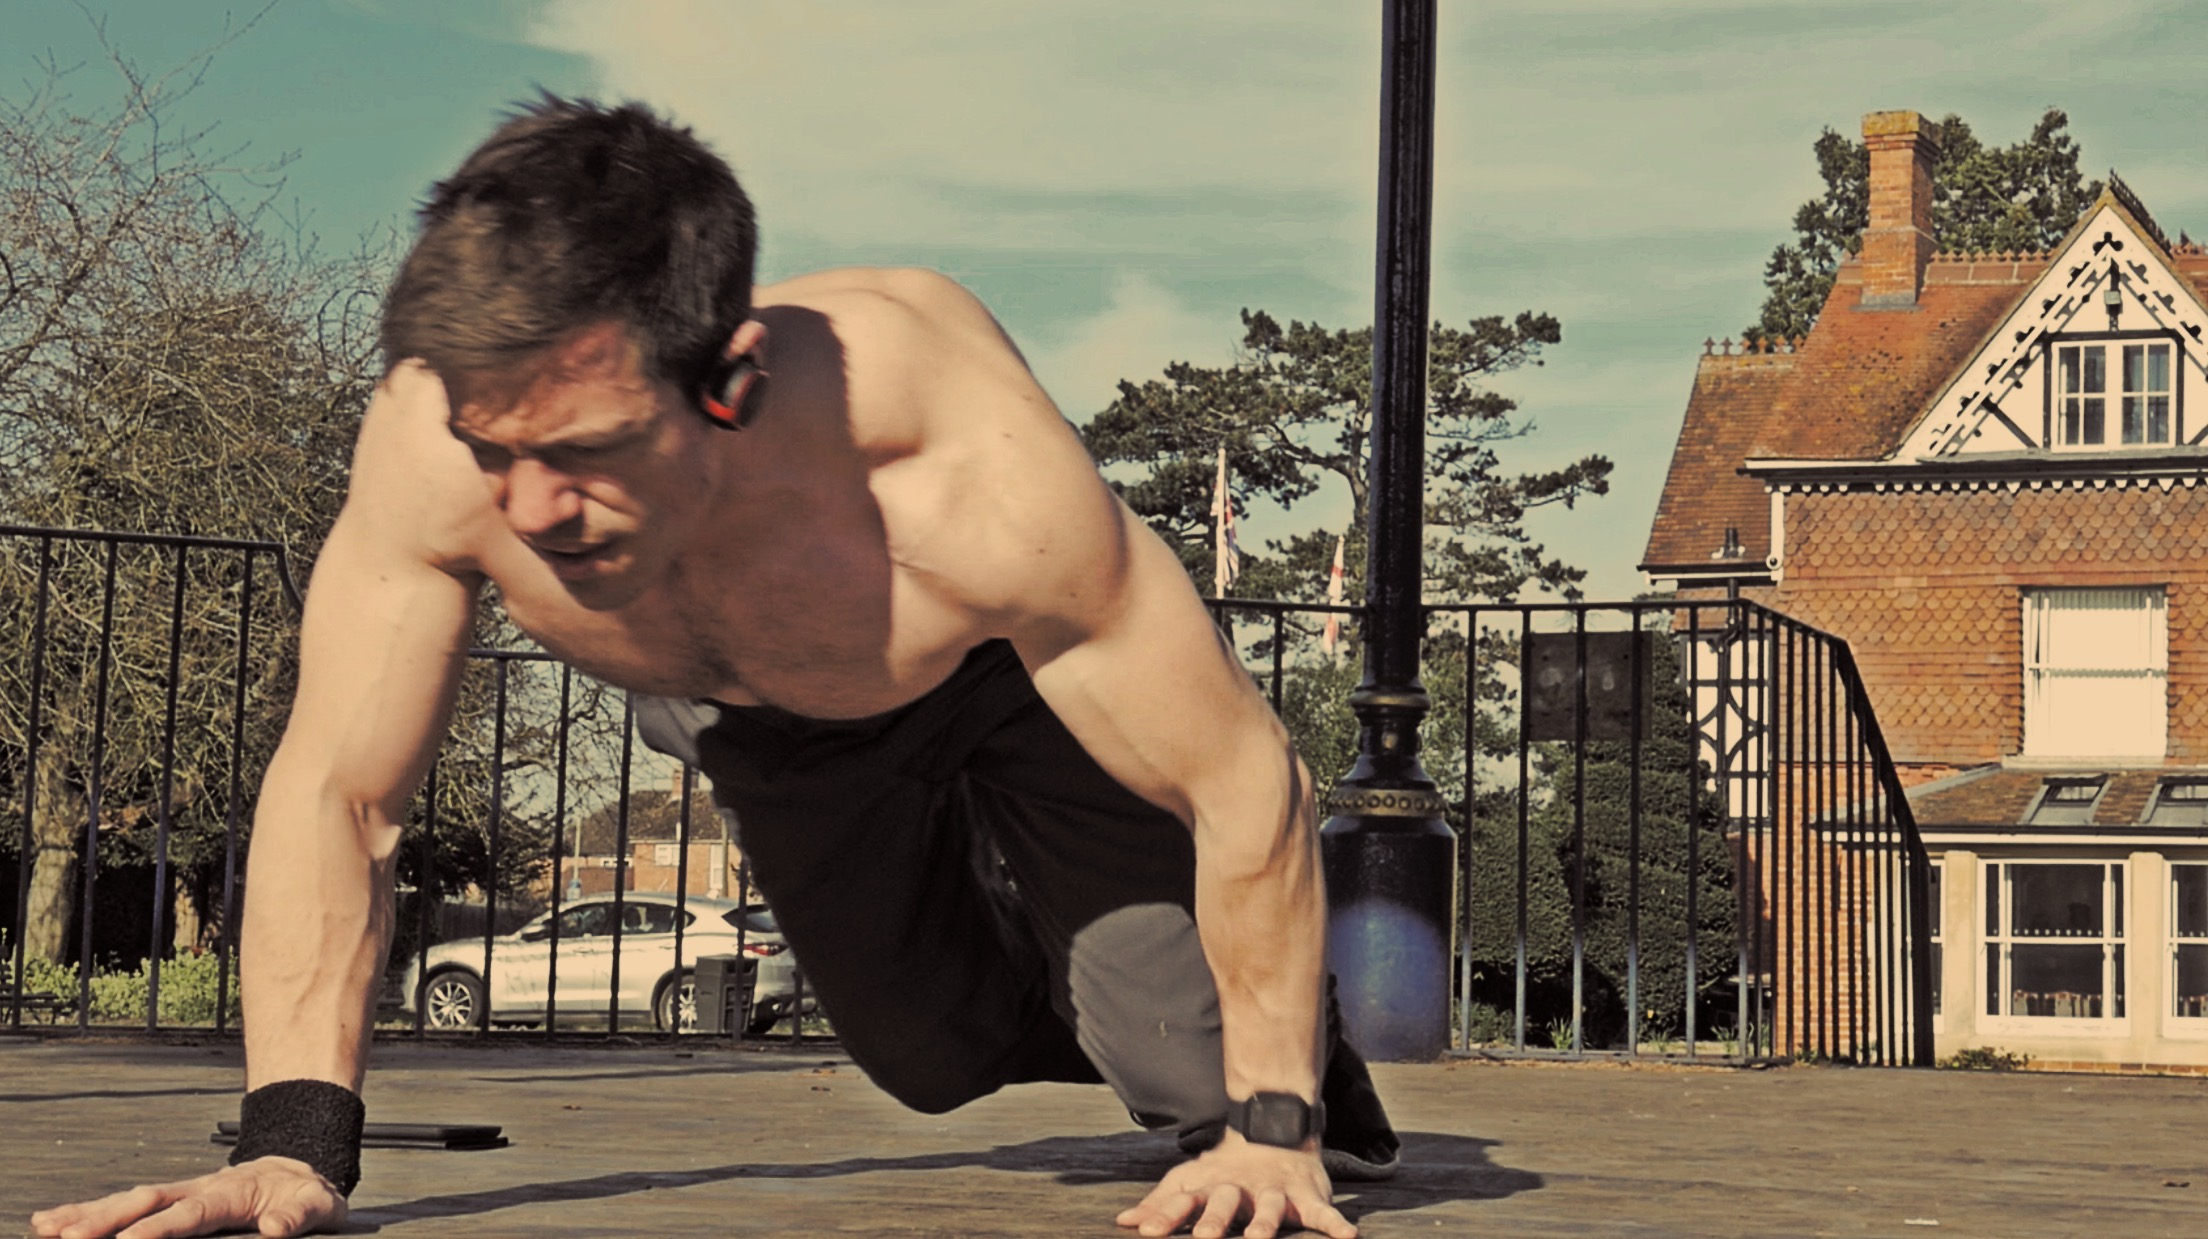 Quadrupedal movement bodyweight training